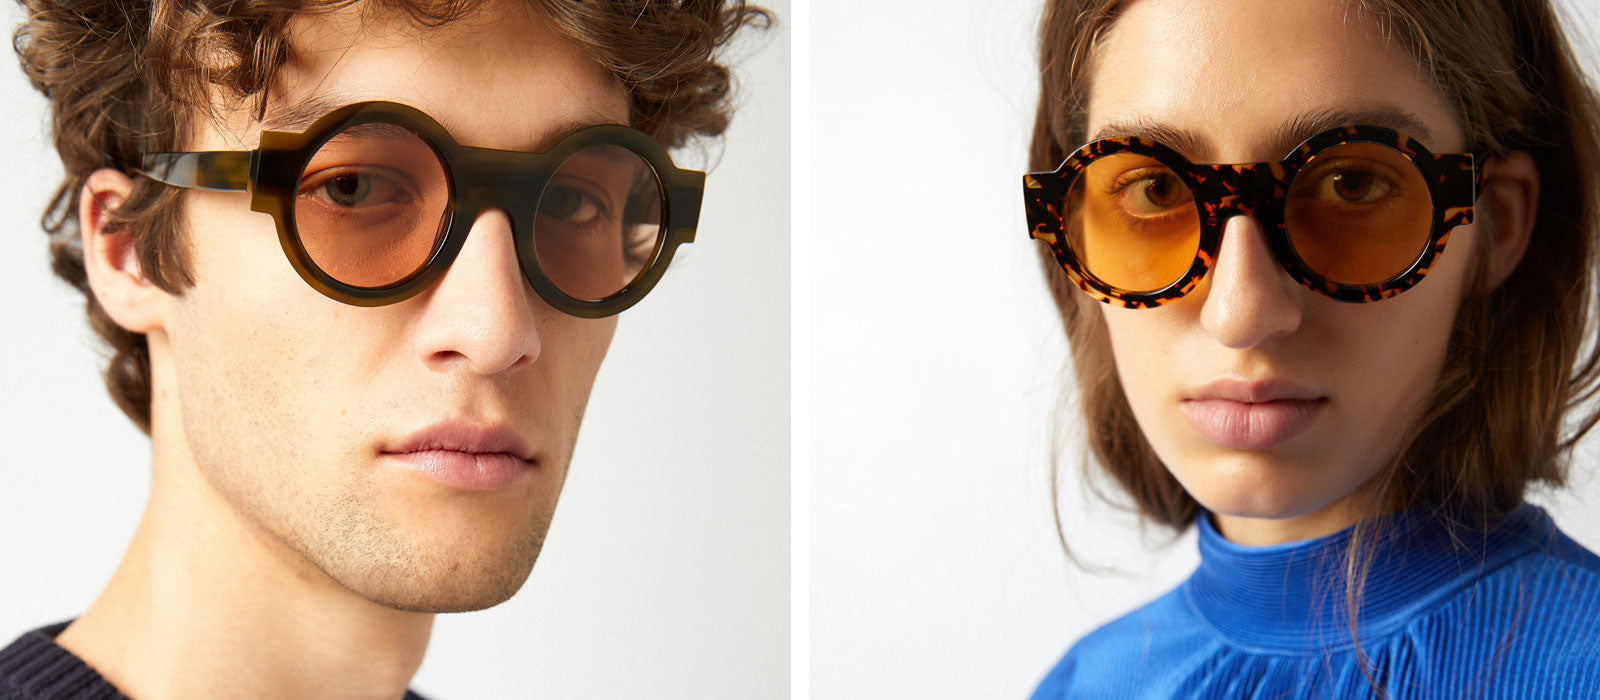 3d91cd7a15 We offer a 20-day no (0%) restocking fee return policy for all of our  eyewear purchased online. Prescription lens purchases are eligible for a 50%  refund.